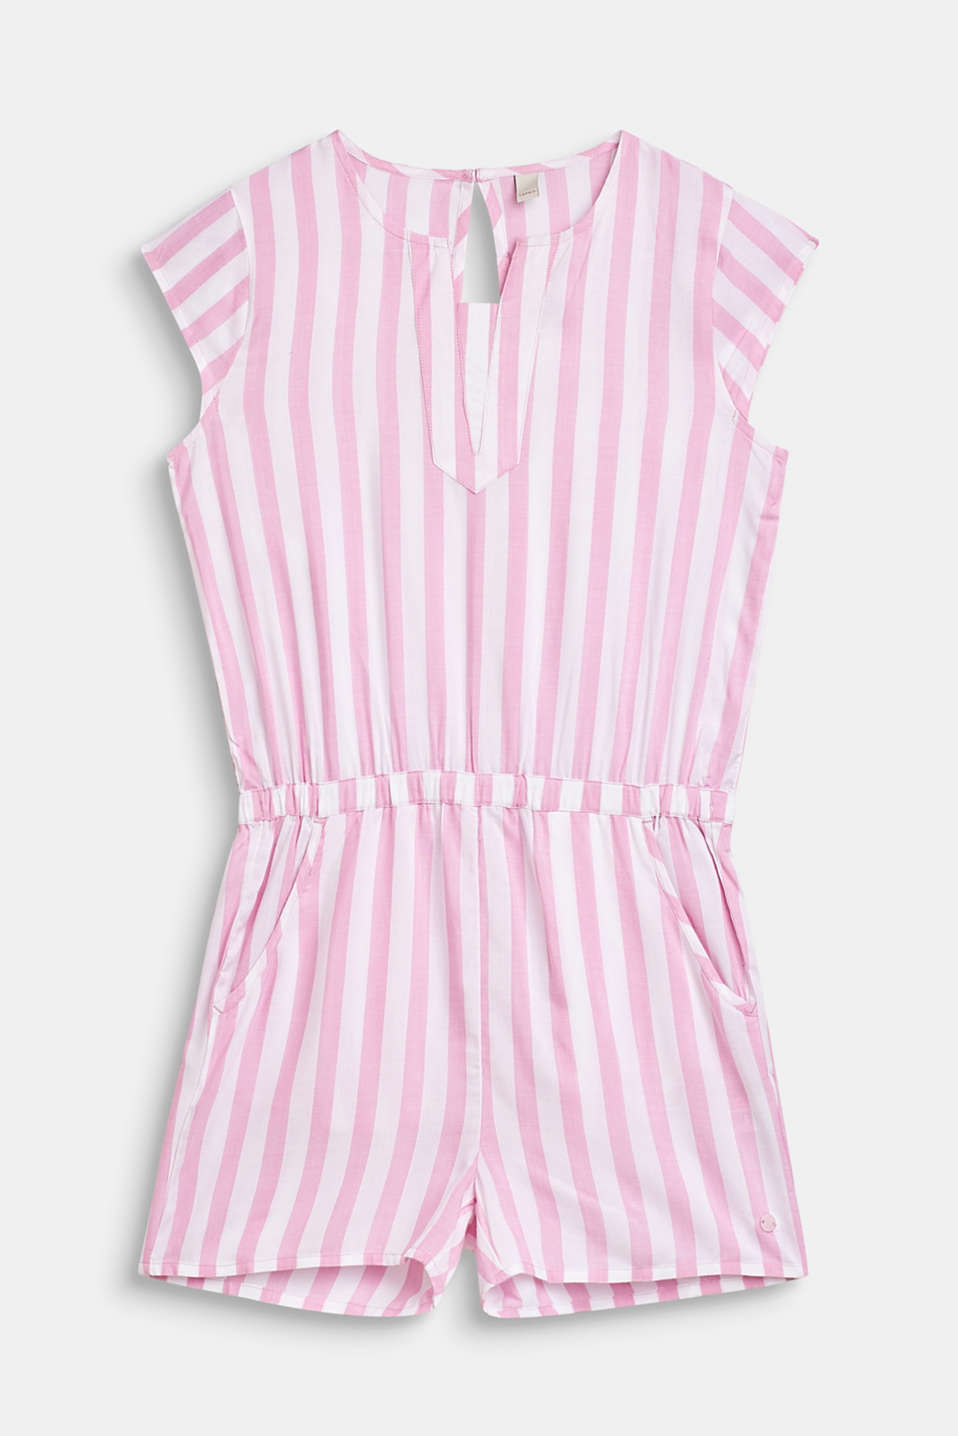 Esprit - Woven playsuit with stripes